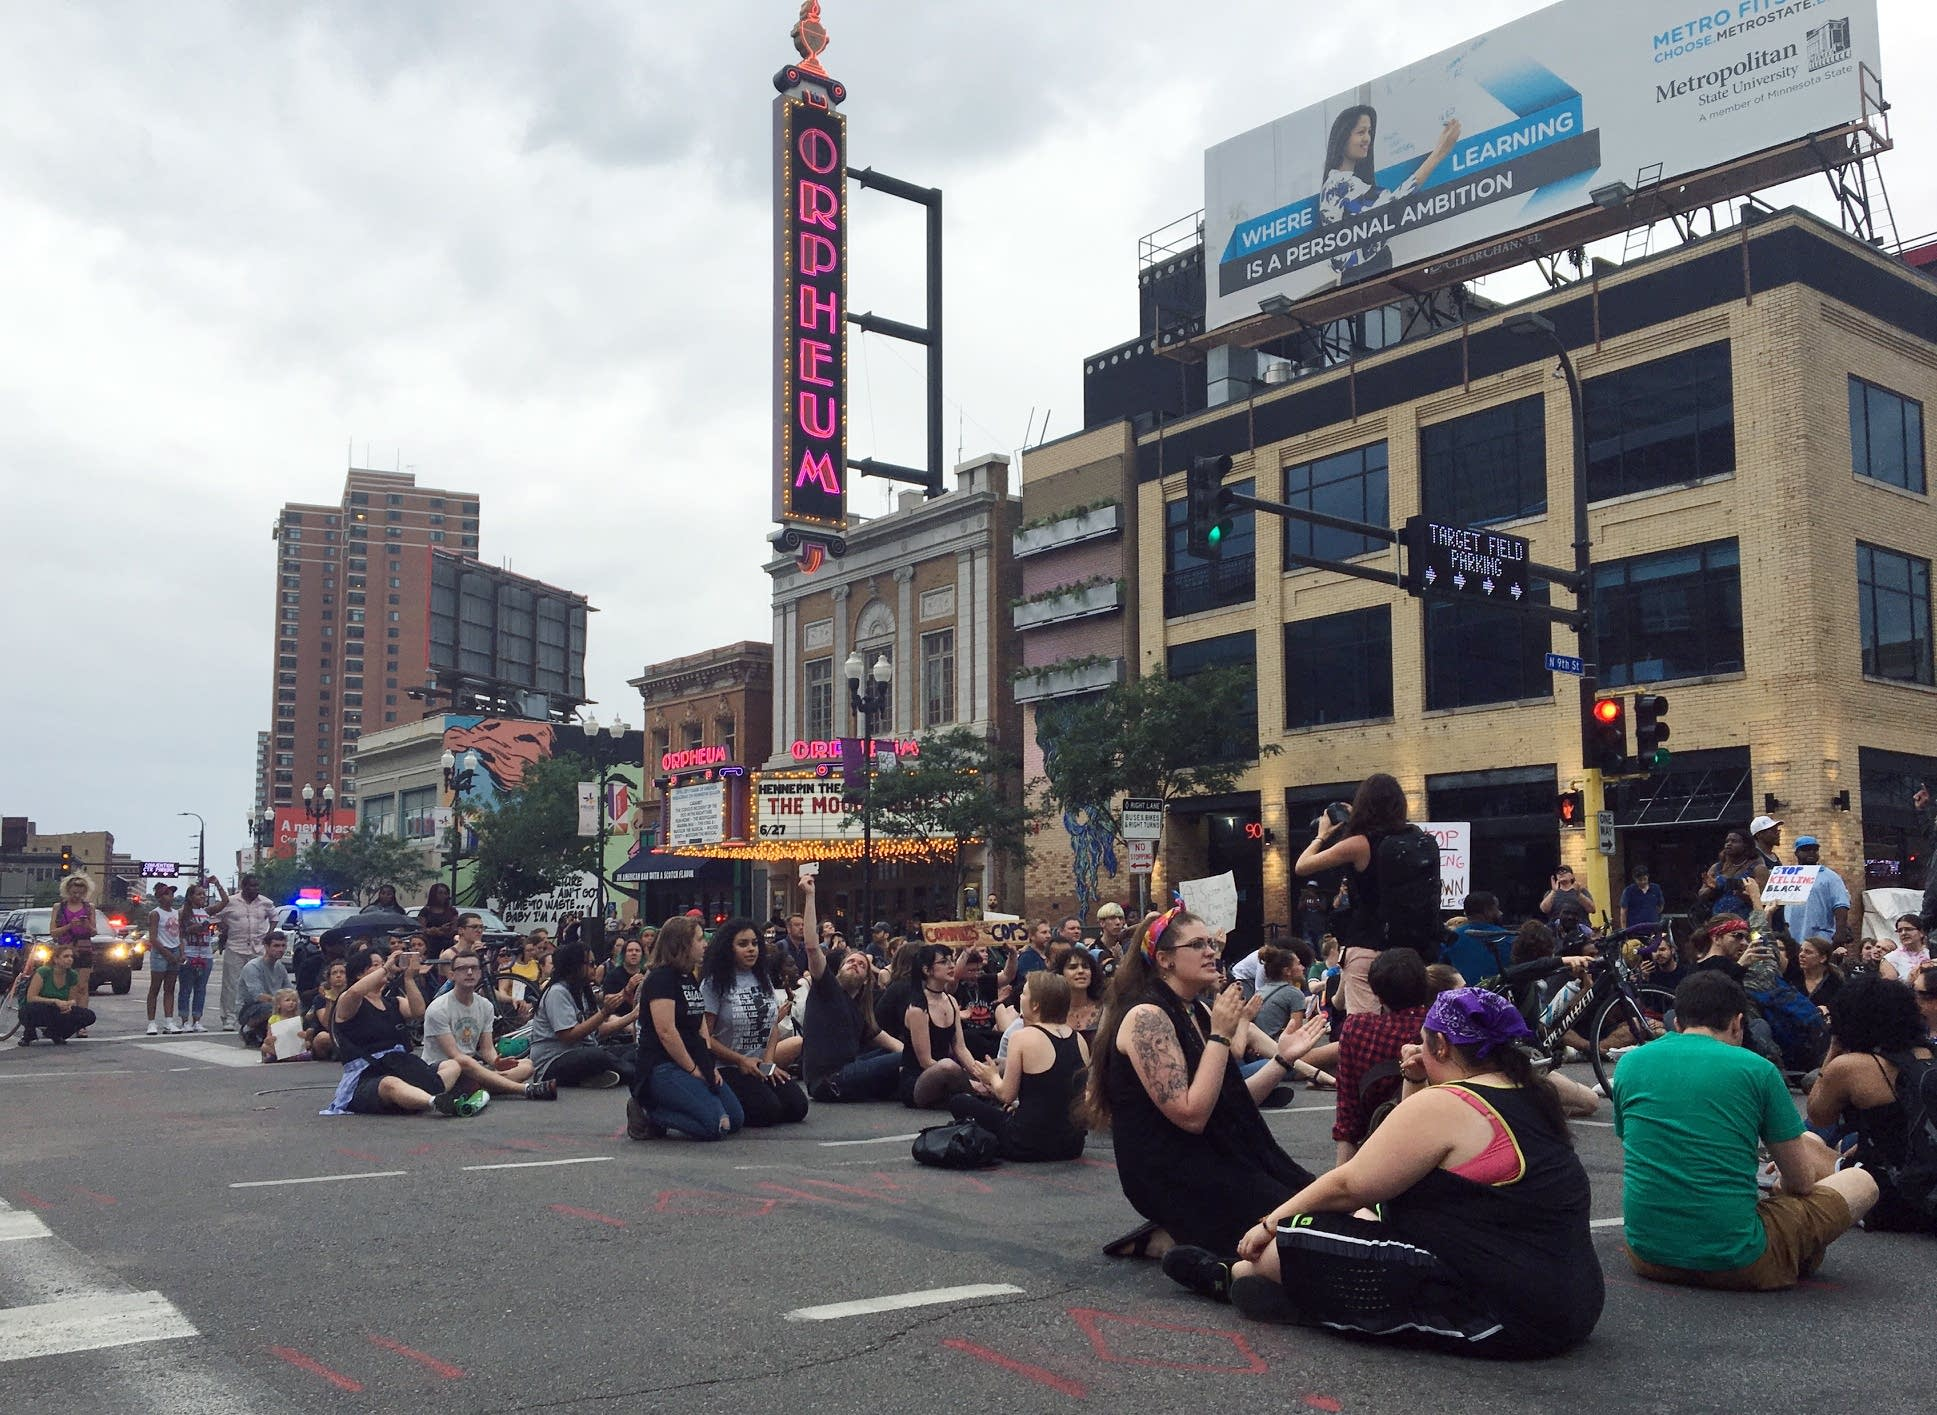 About 50 protesters sit in street at 9th and Hennepin Ave.